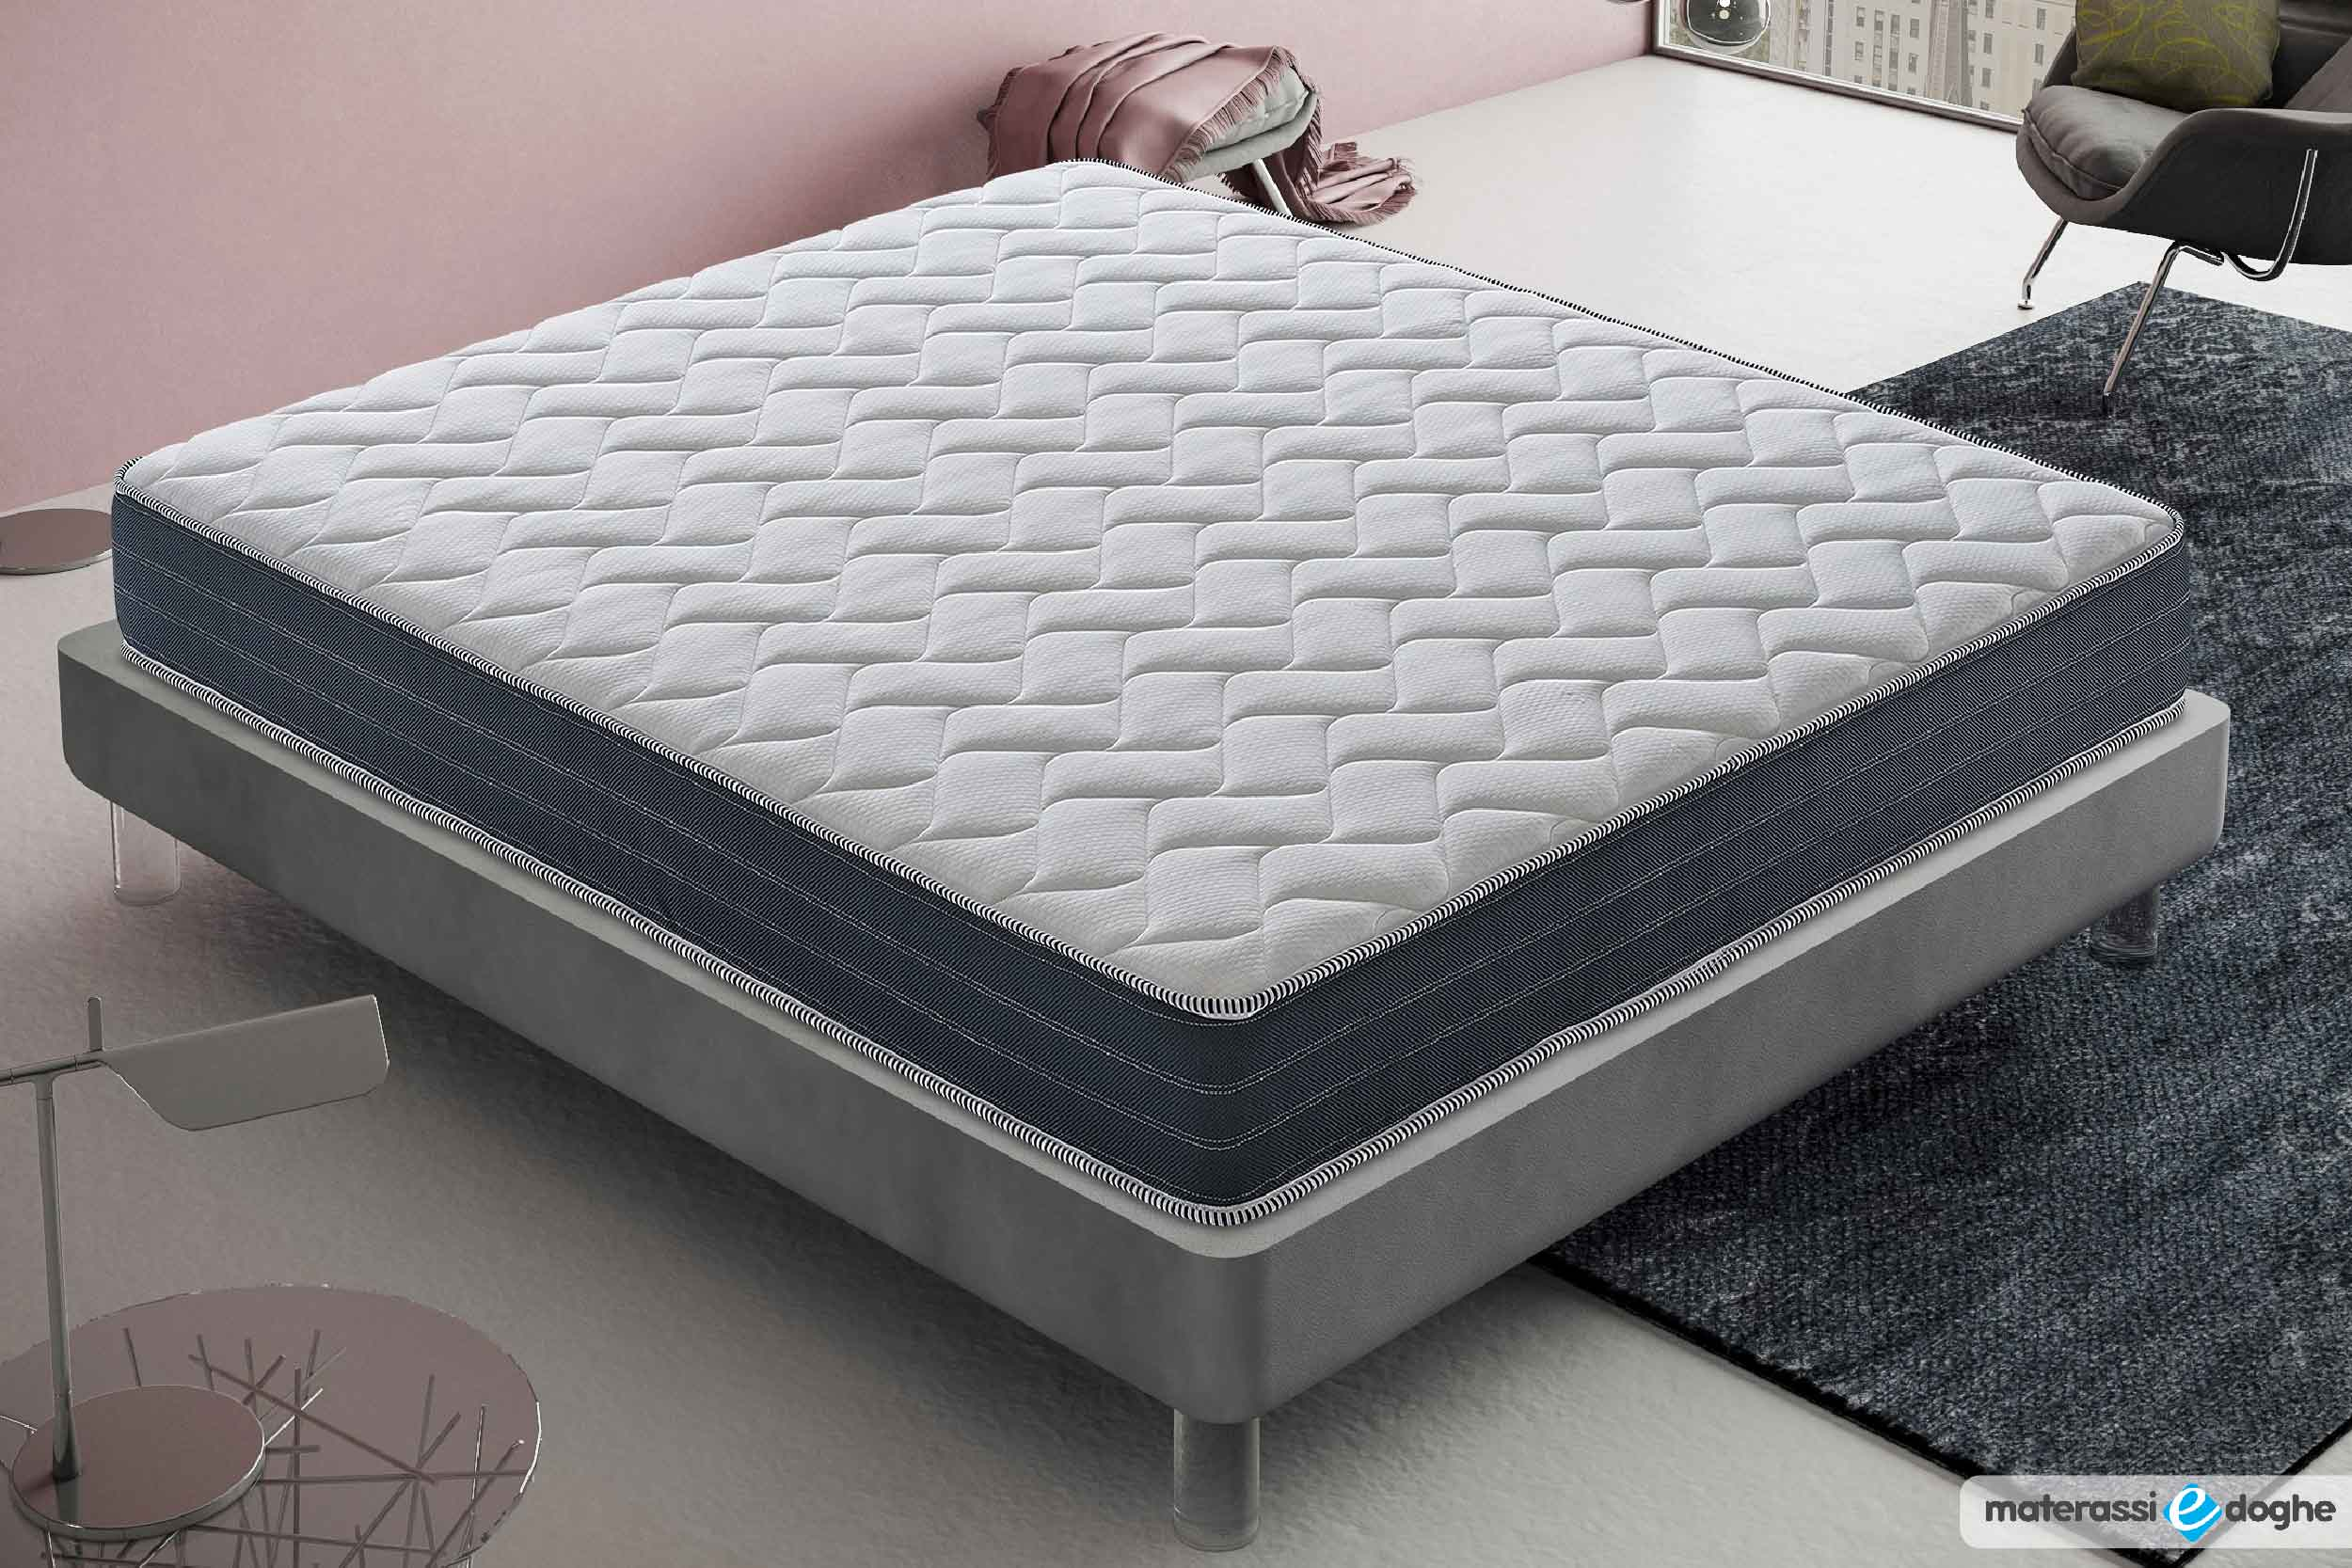 Memory Foam Mymemory Mattress Stratus With 11 Different Areas Materassi E Doghe